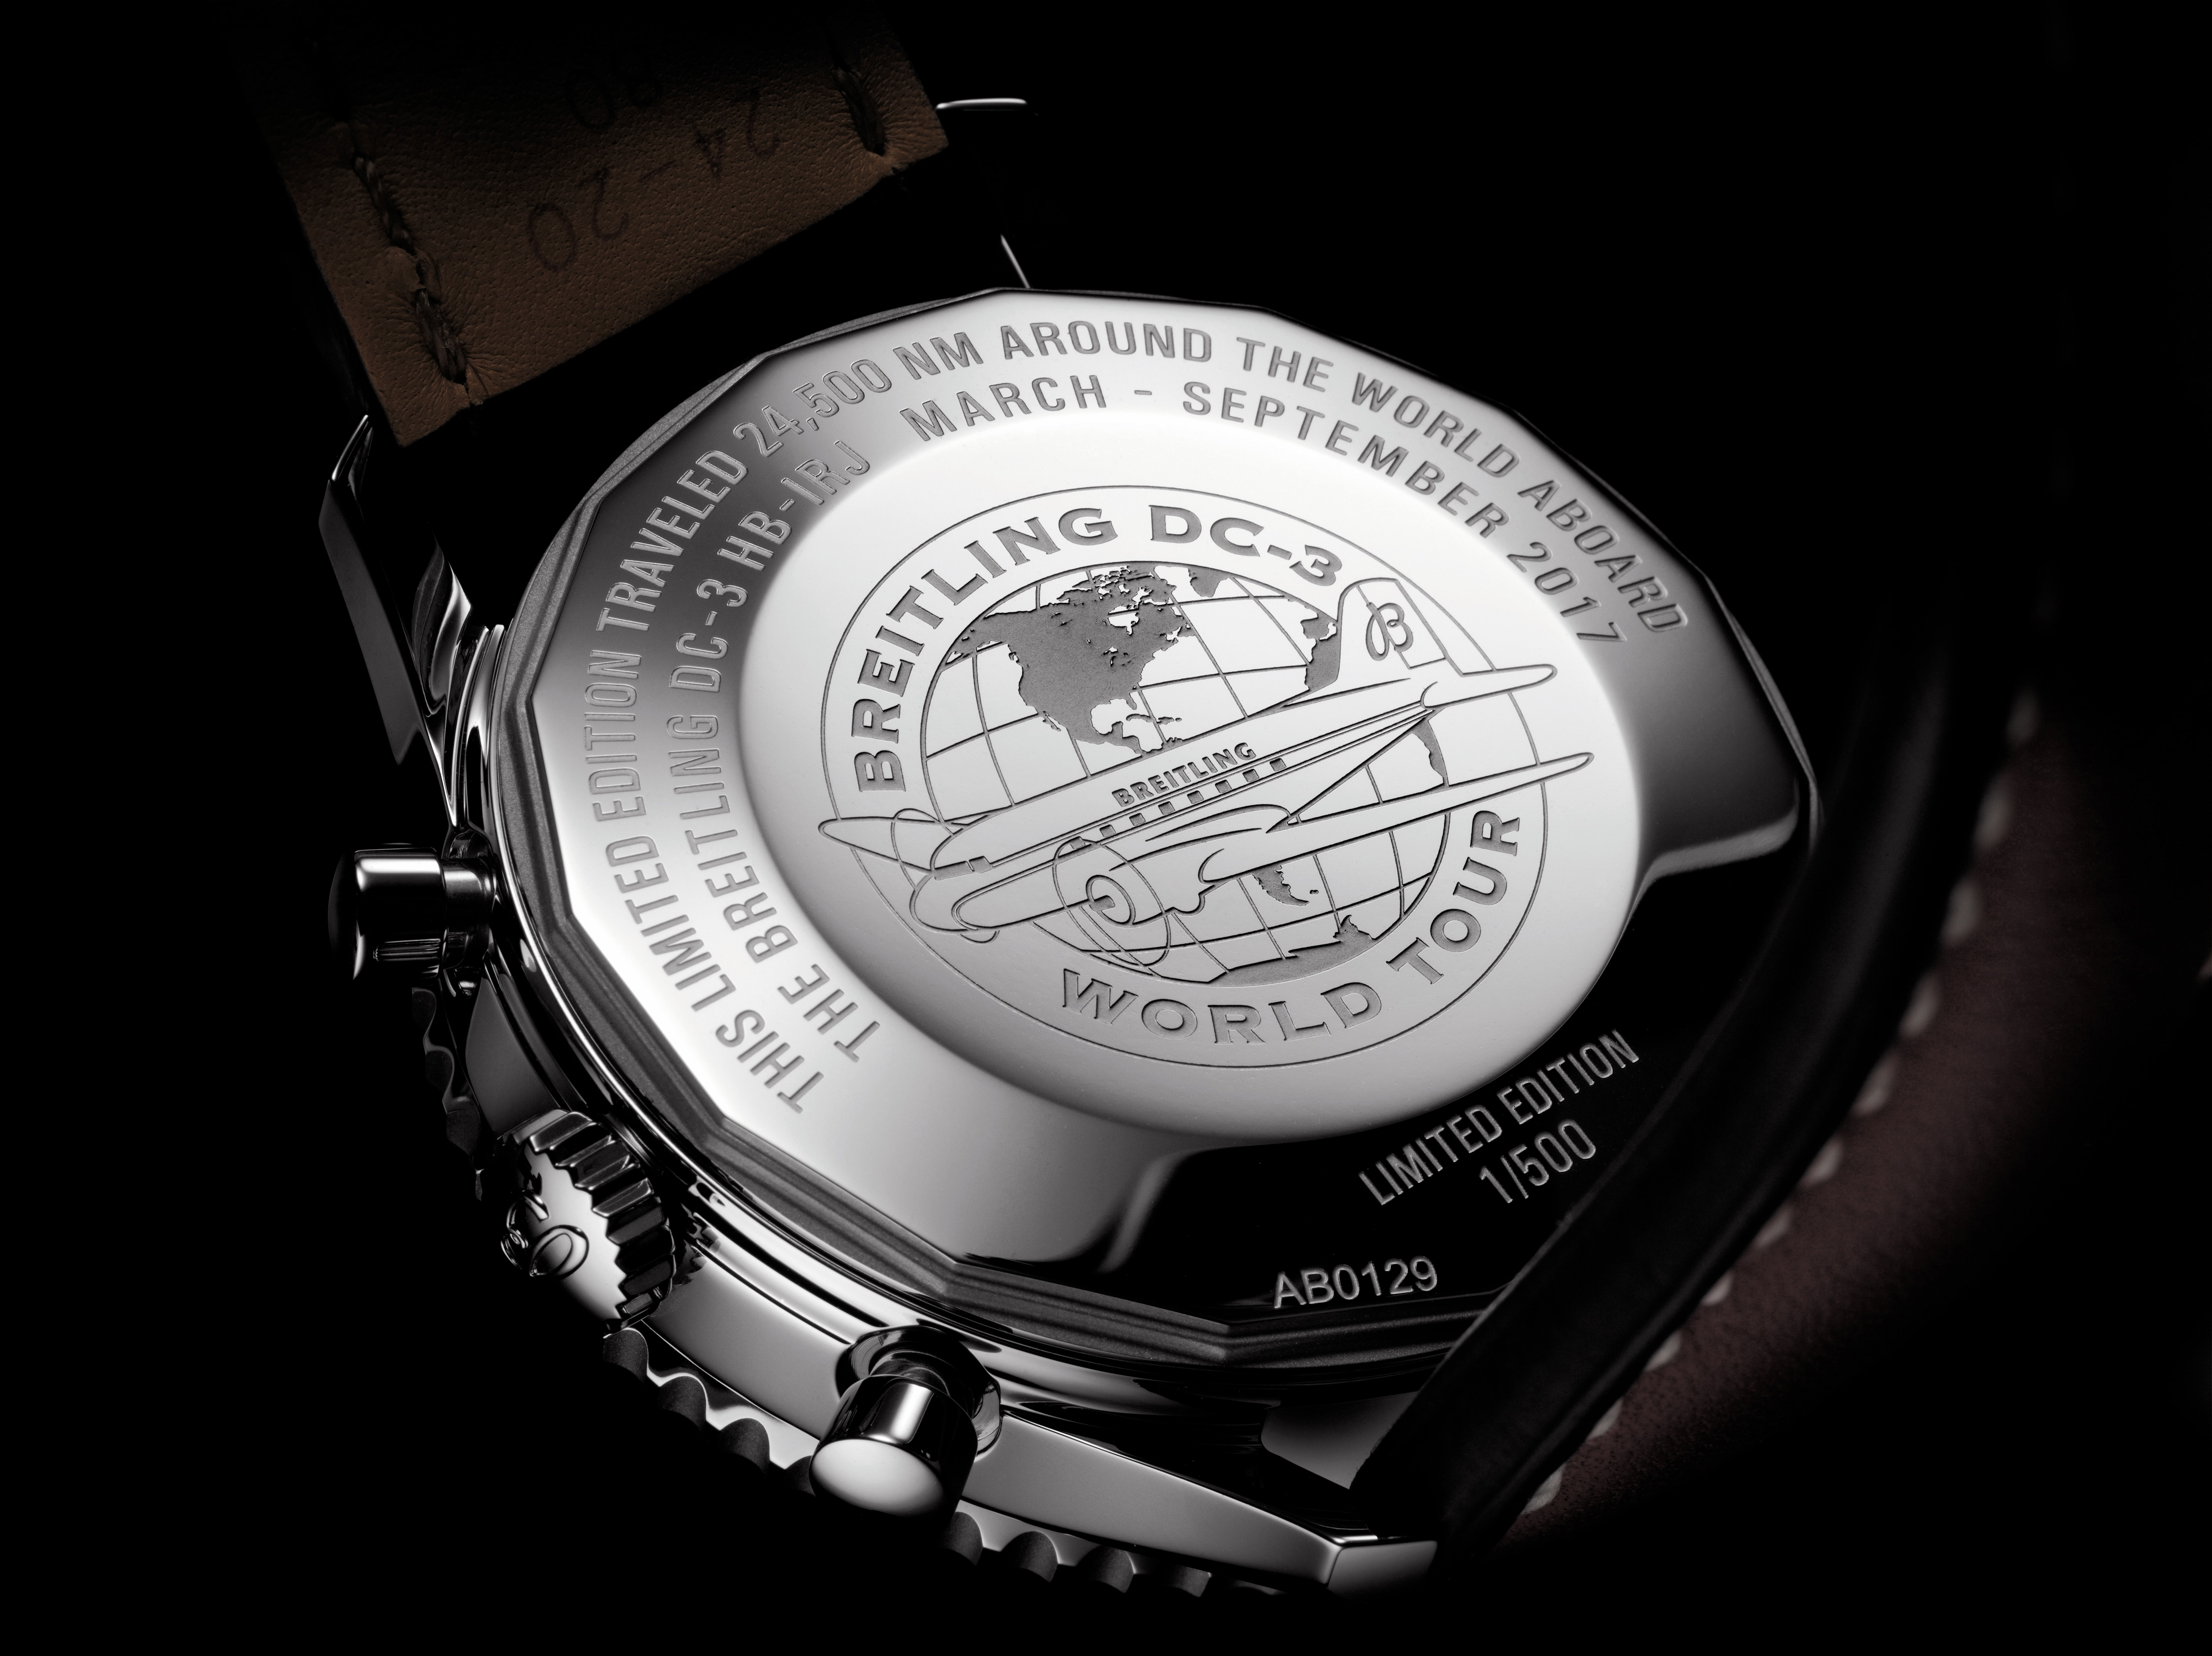 Breitling DC-3 Navitimer 01 Limited Edition caseback Dispatches: Breitling's DC-3 To Become Oldest Aircraft Ever To Circle The Earth Dispatches: Breitling's DC-3 To Become Oldest Aircraft Ever To Circle The Earth Breitling DC 3 Limited Edition Navitimer 4